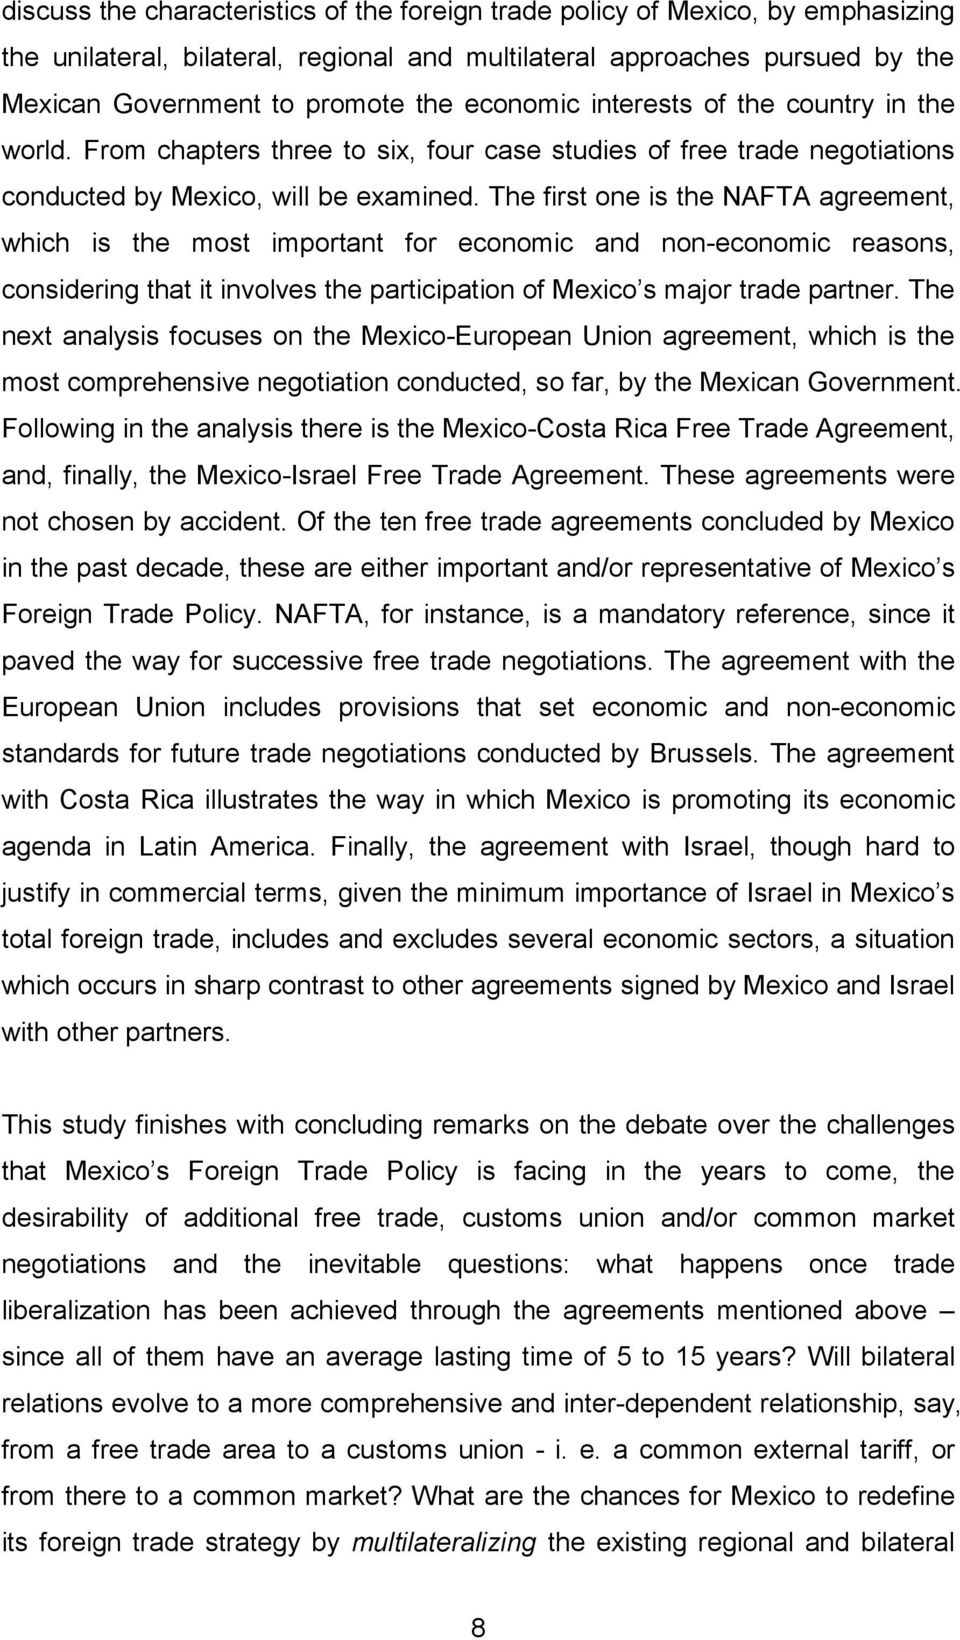 The first one is the NAFTA agreement, which is the most important for economic and non-economic reasons, considering that it involves the participation of Mexico s major trade partner.